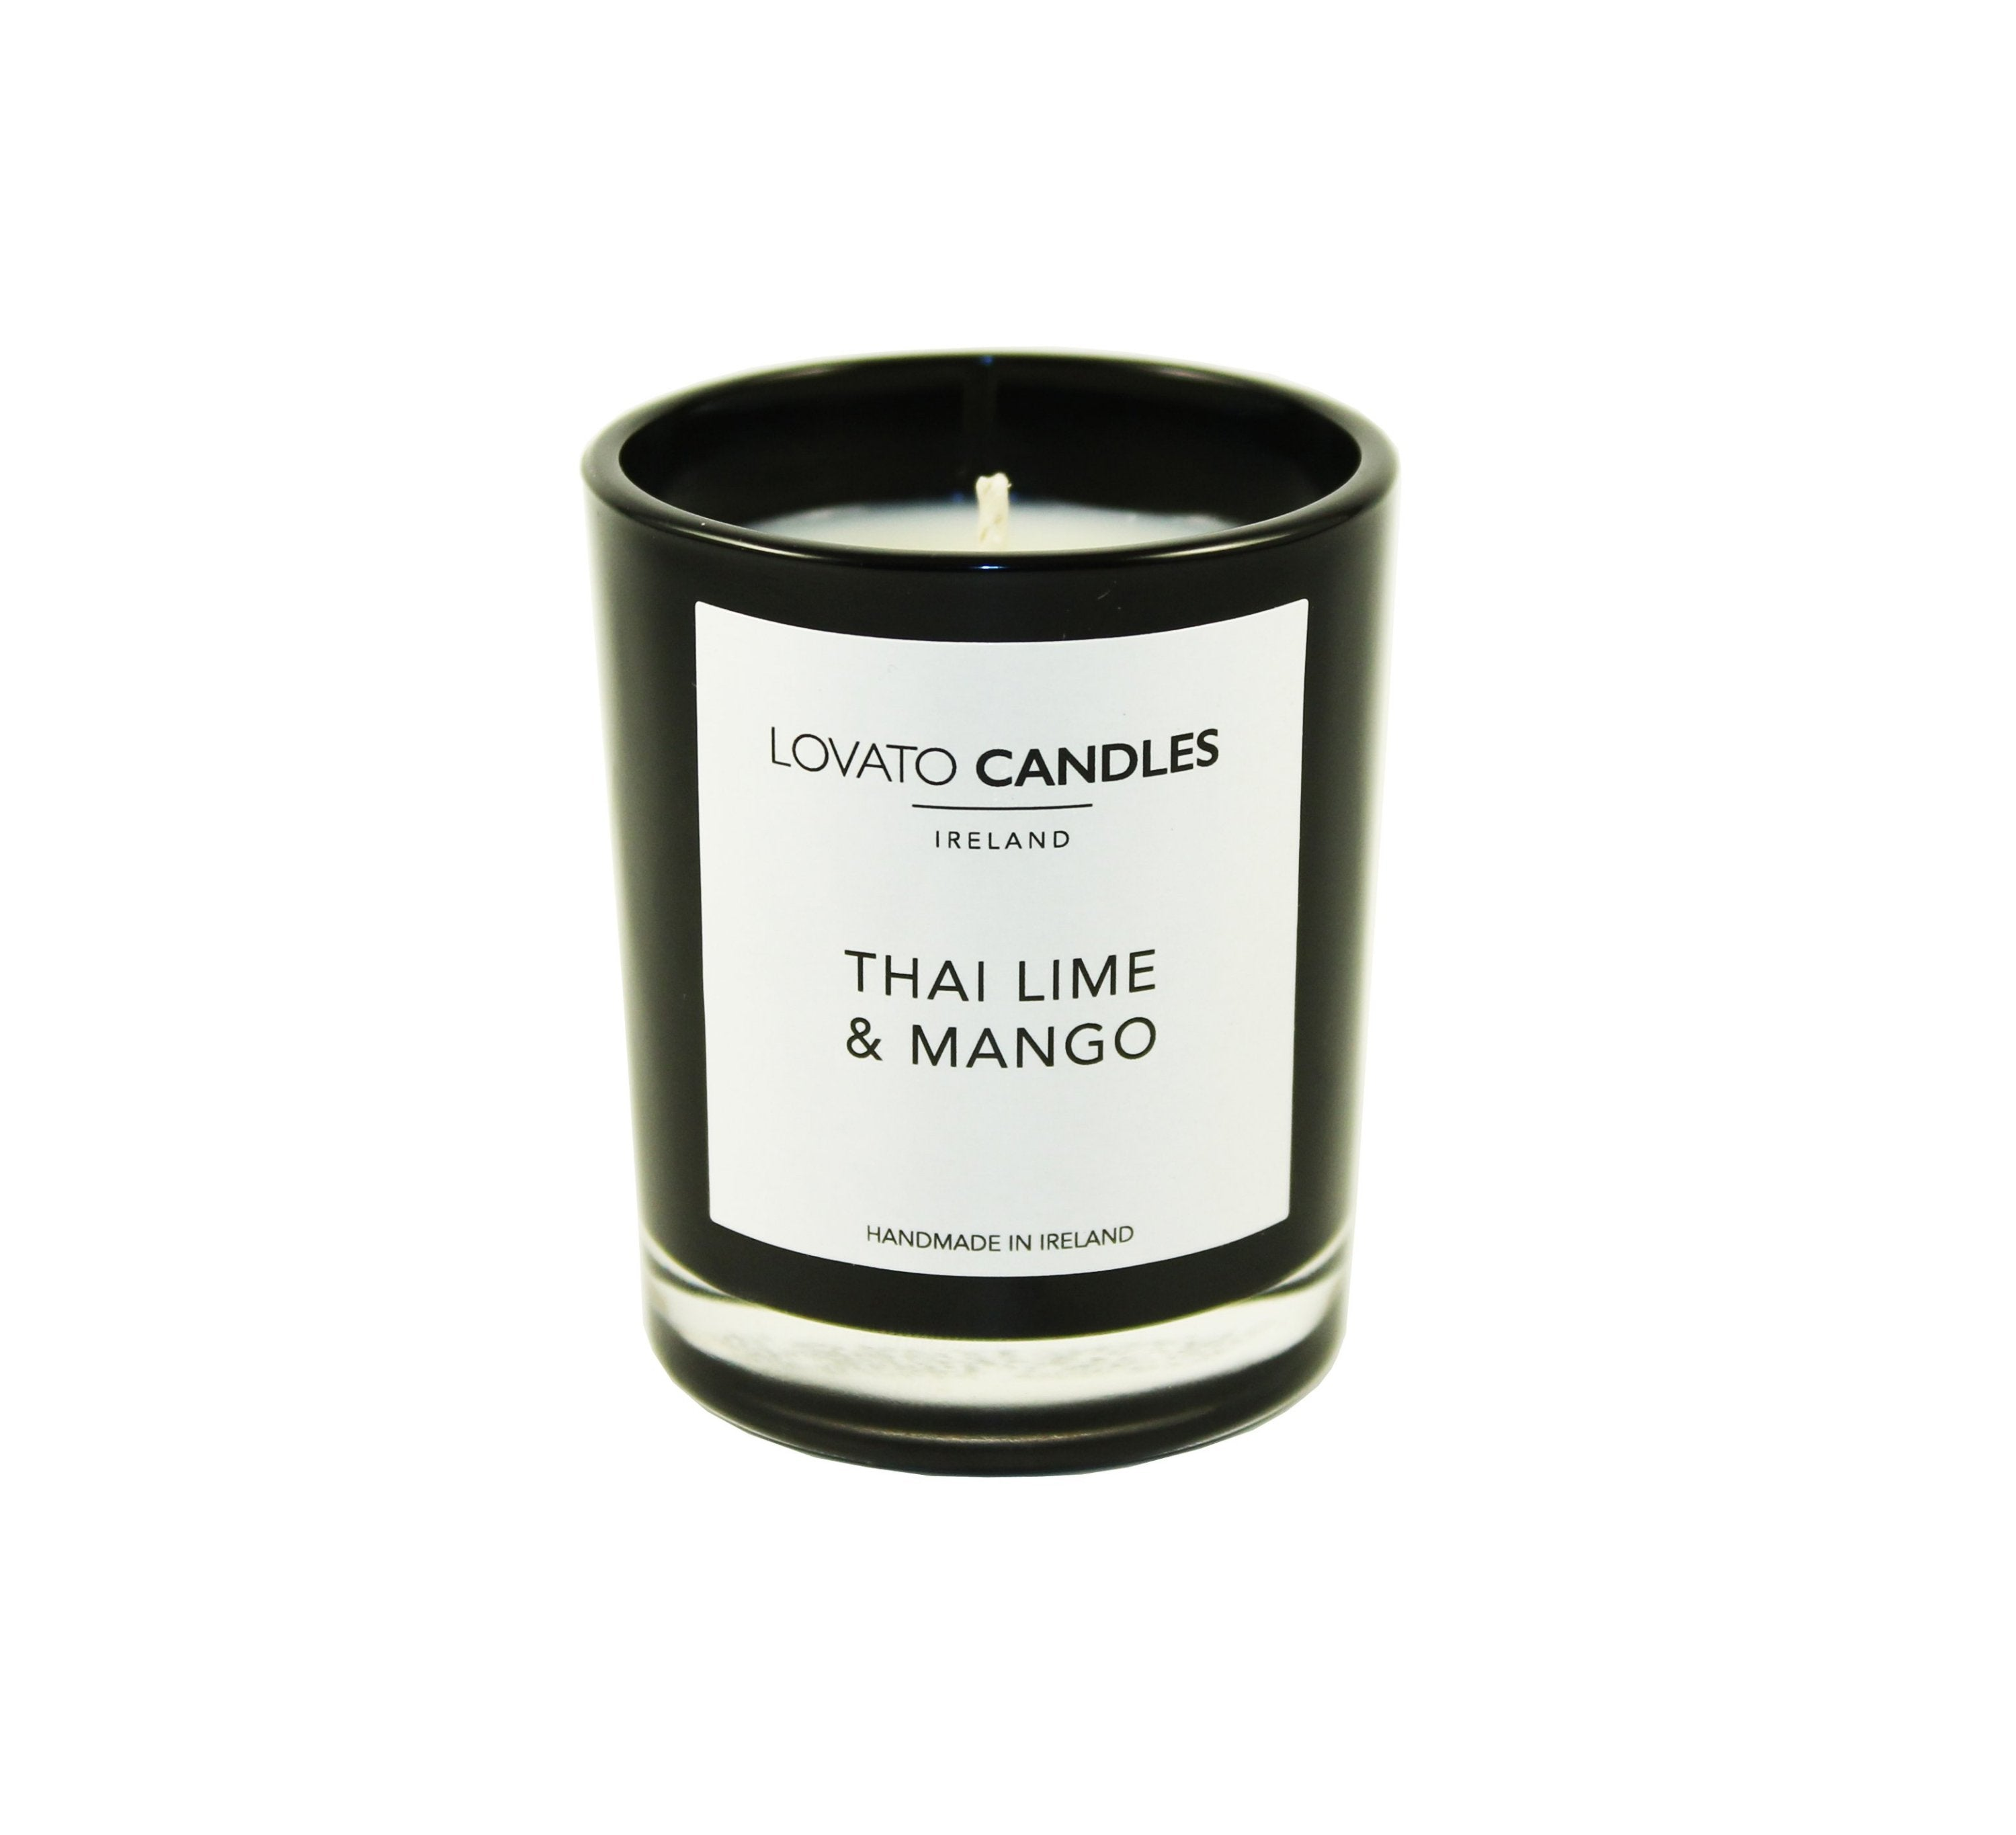 Black Votive Candle - Thai Lime & Mango - Lovato Candles